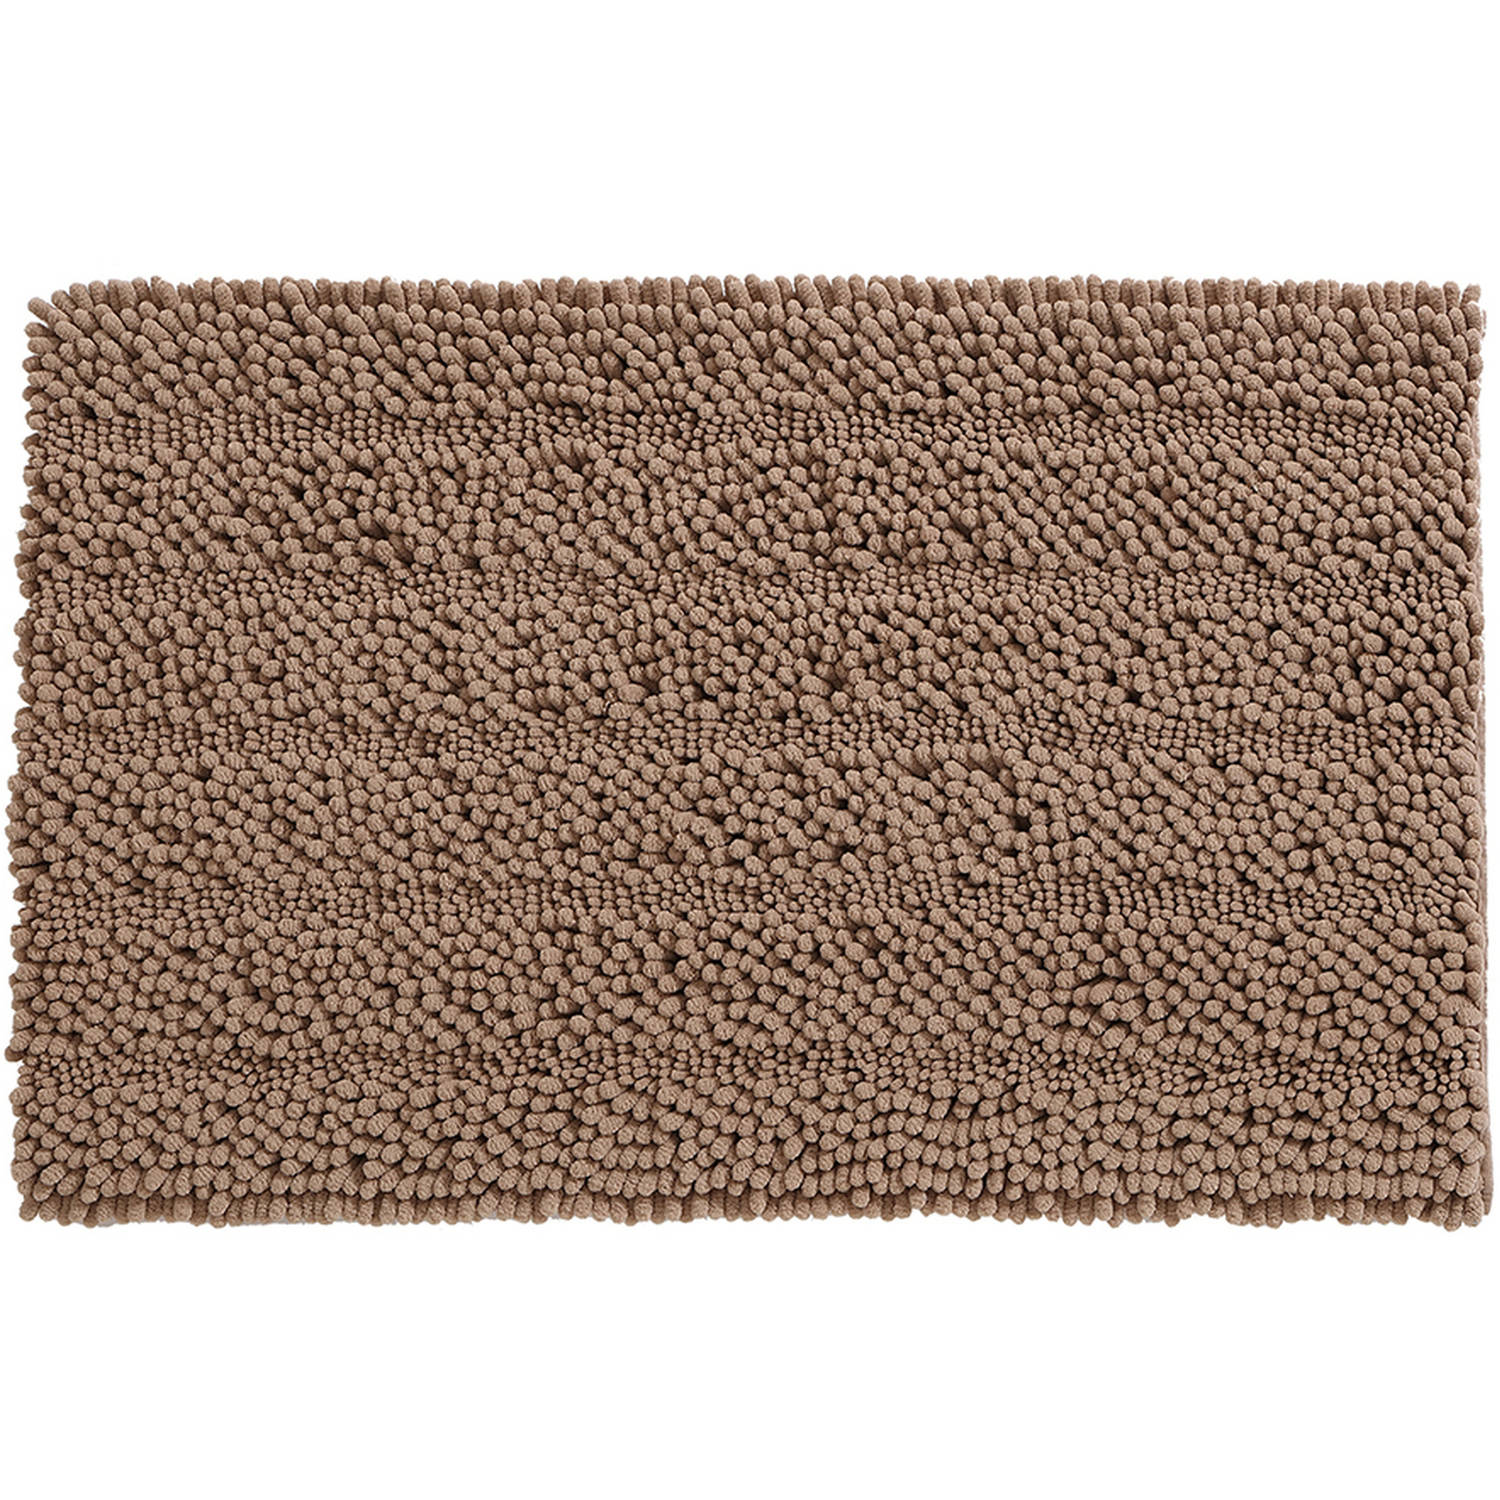 Creative  Rug Garland Rug BRC005 Room Size Bathroom Carpet Rug Bath Rugs